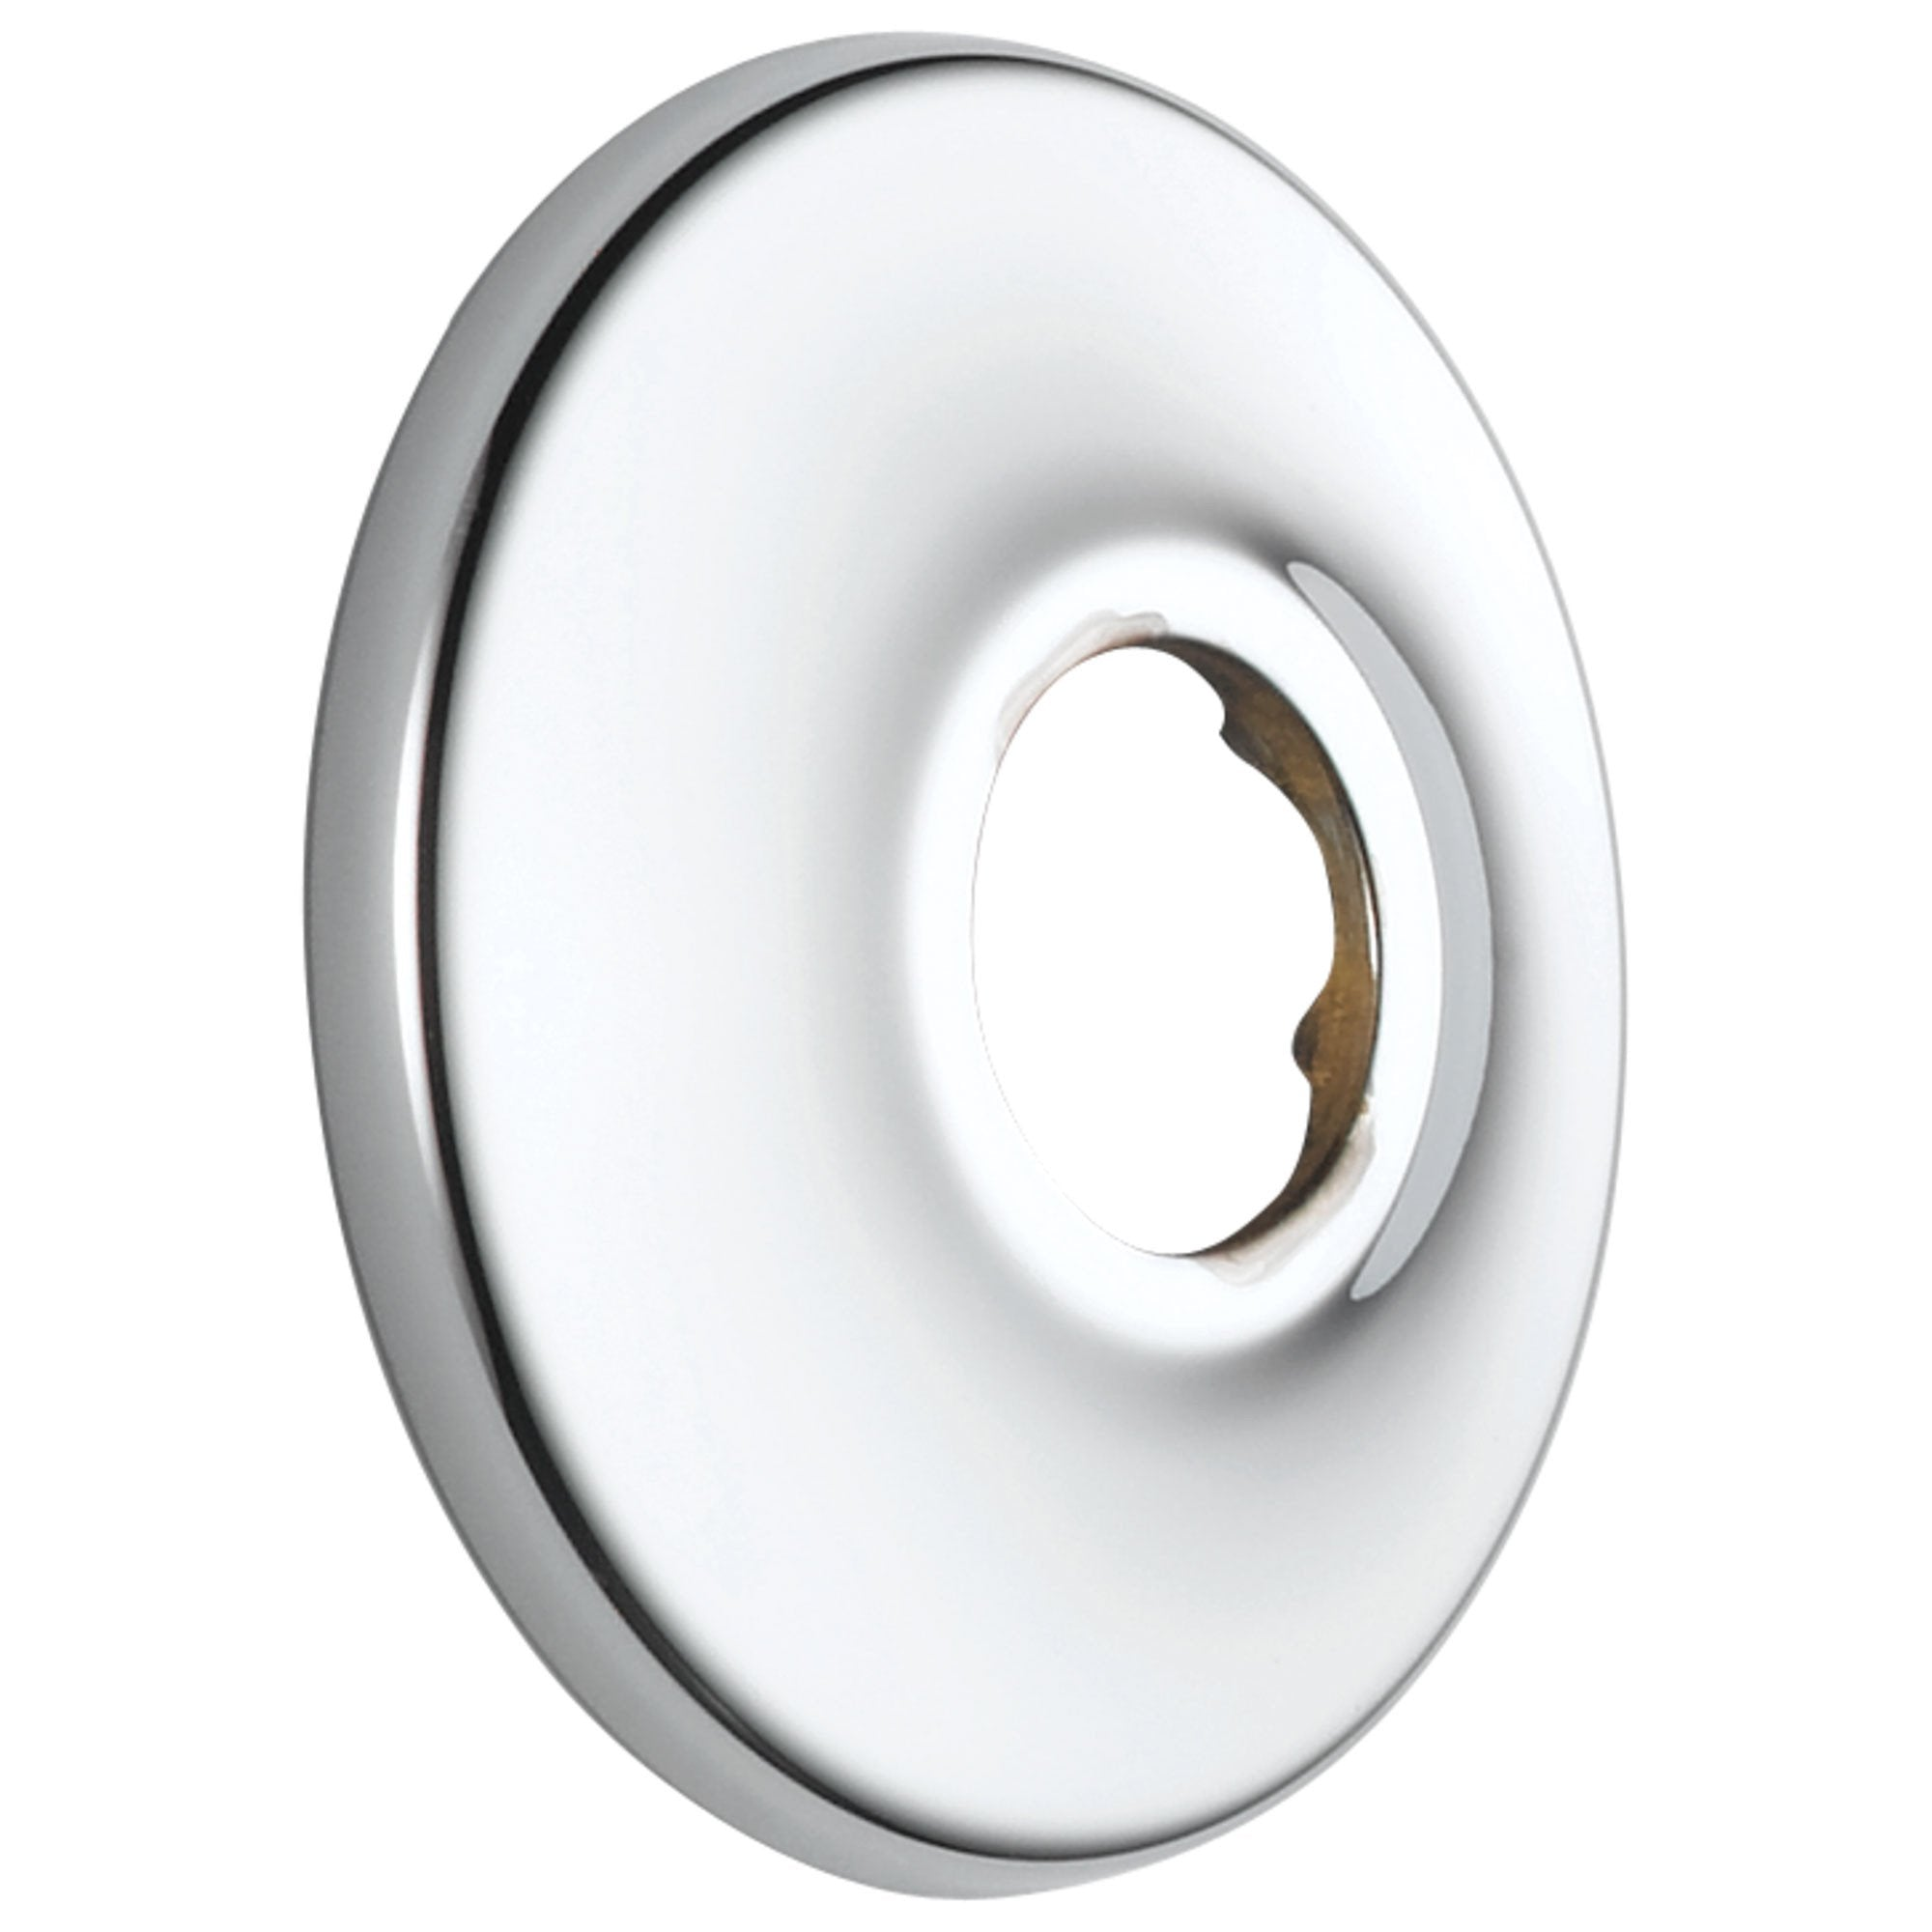 Delta Chrome Finish Standard Round Shower Arm Flange 48500